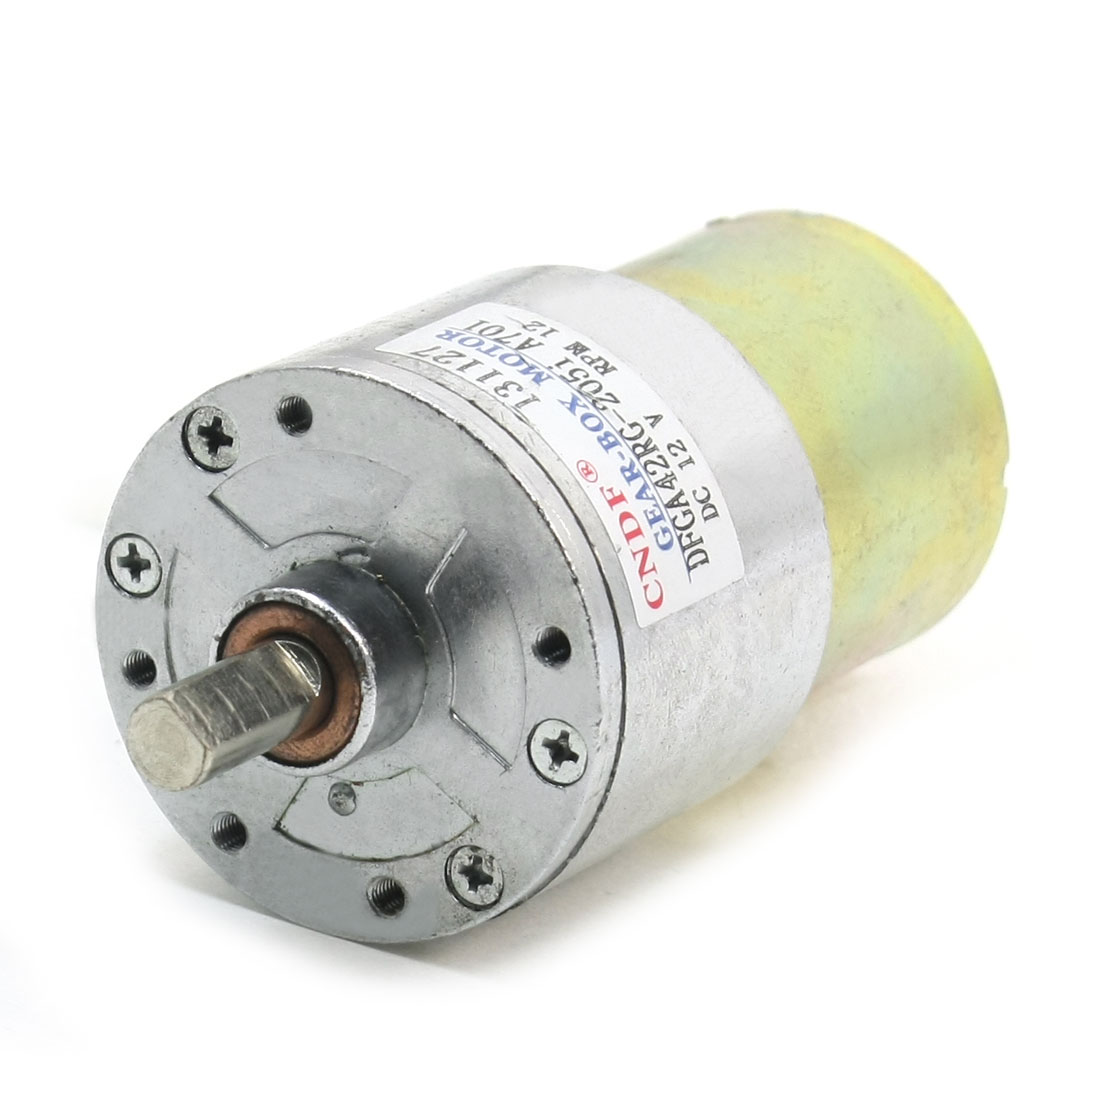 DC12V 12RPM 92mm Length Silver Tone Metal Magnetic Gearbox Motor